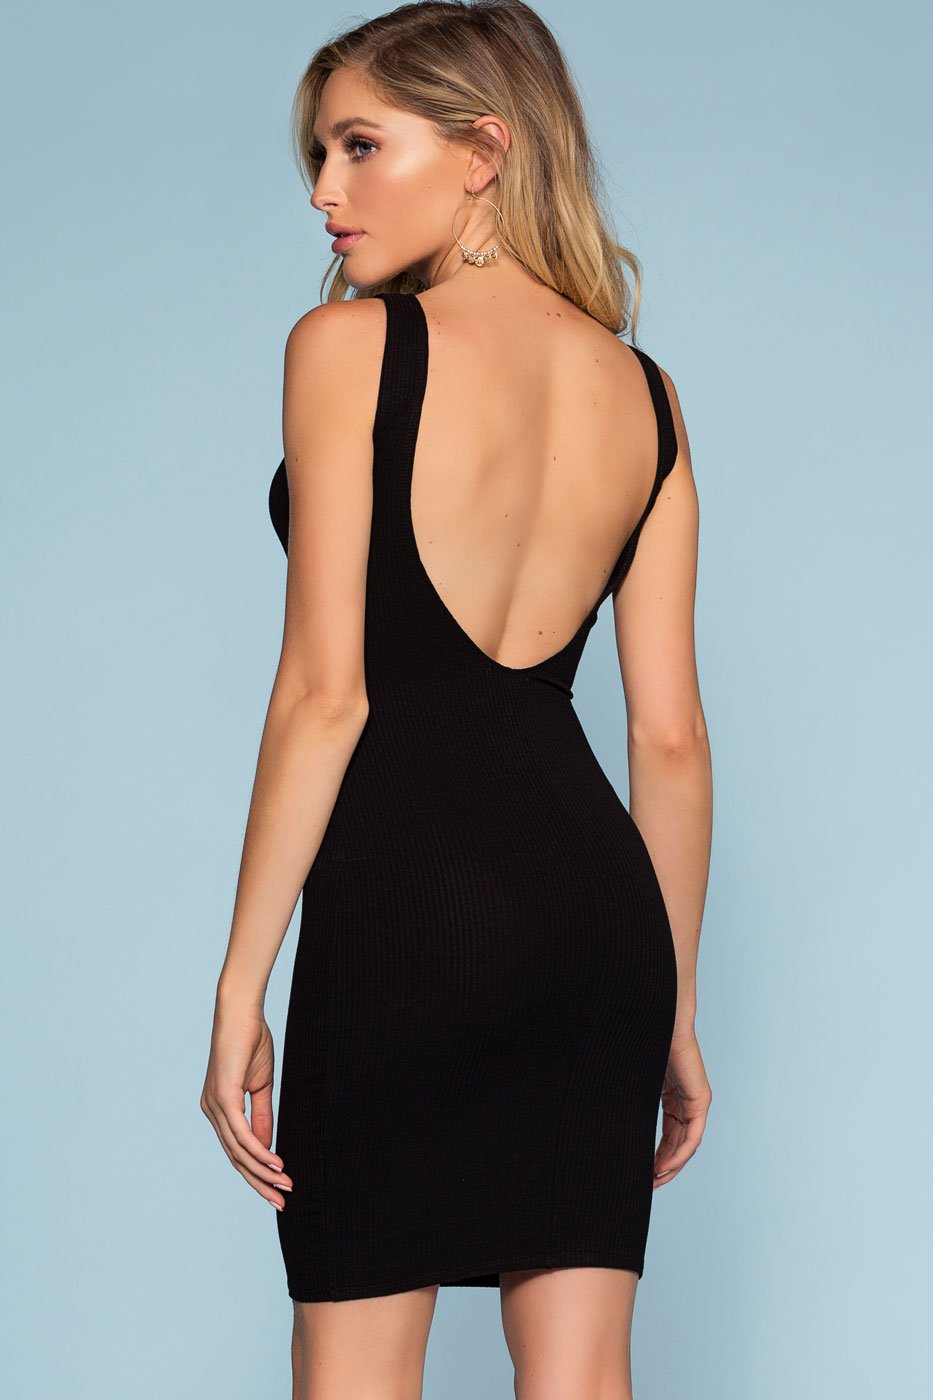 Dresses - Misty Bodycon Dress - Black